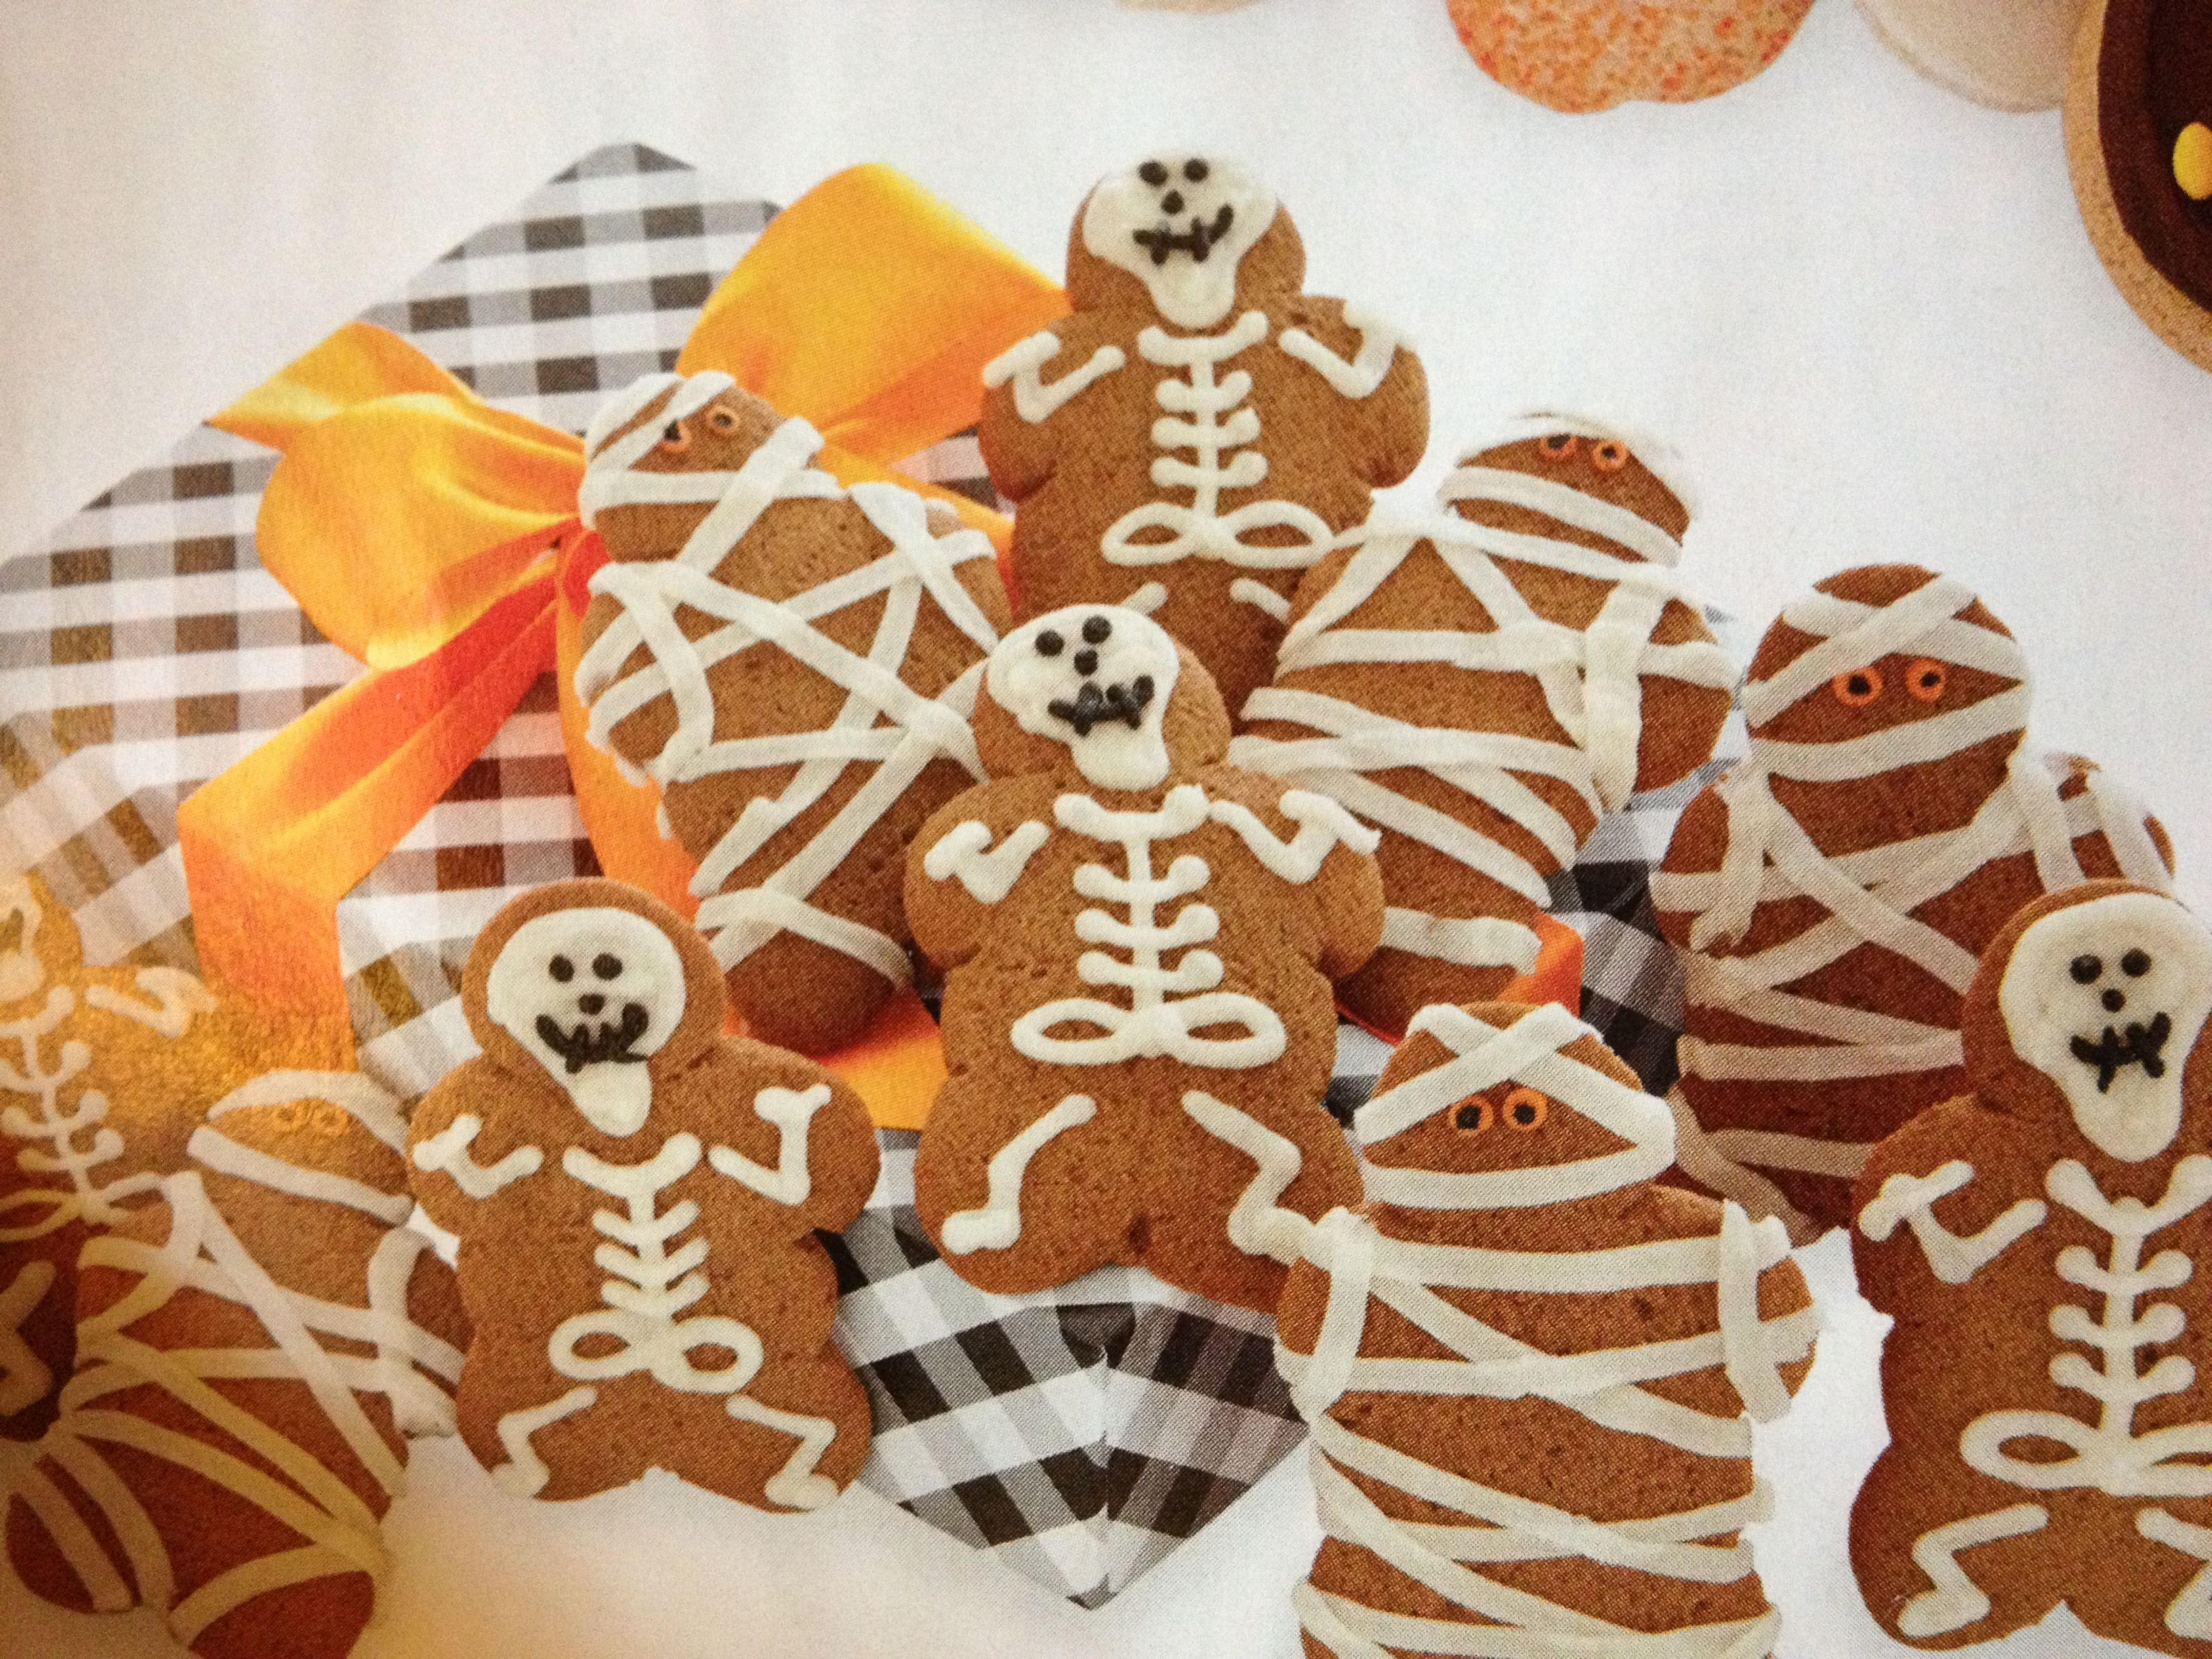 Gingerbread skeletons and mummies.